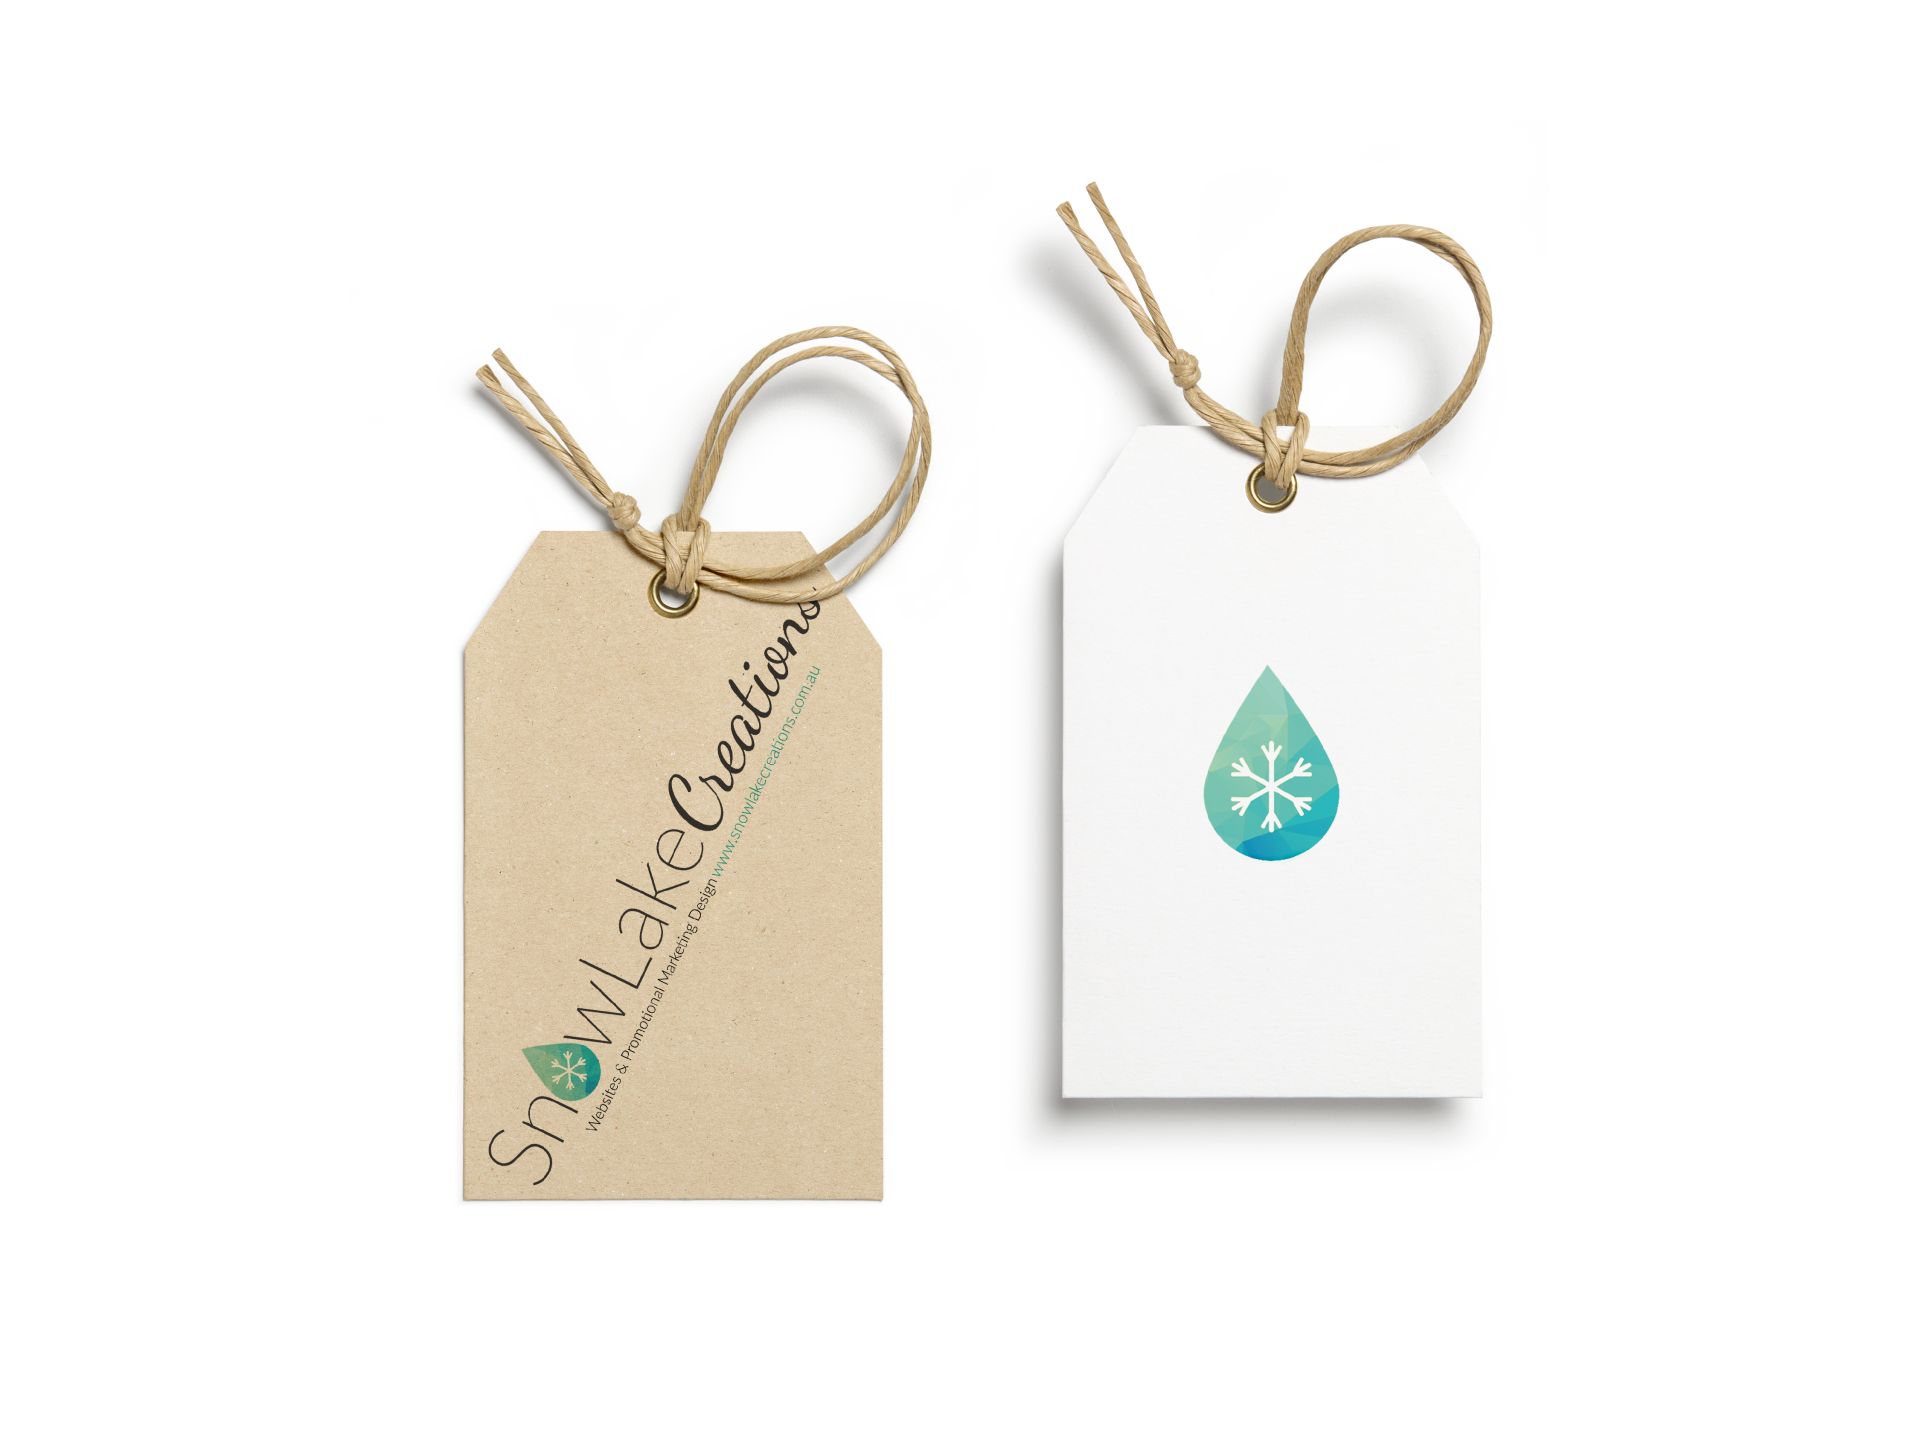 SnowLake Marketing Design offers print design of all sorts of items including tags & labels